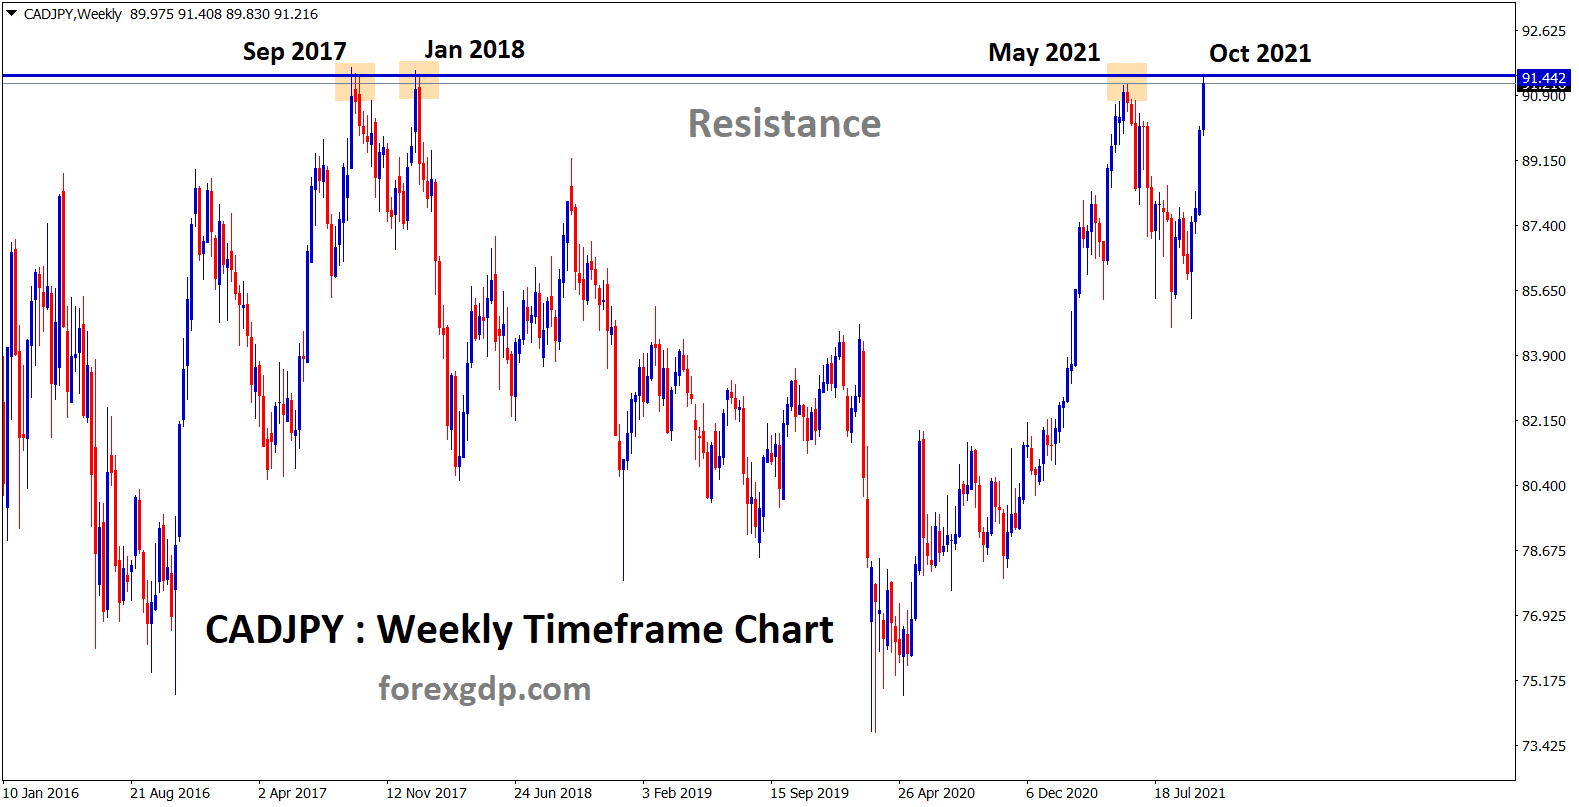 CADJPY hits the major resistance area again wait for reversal or breakout